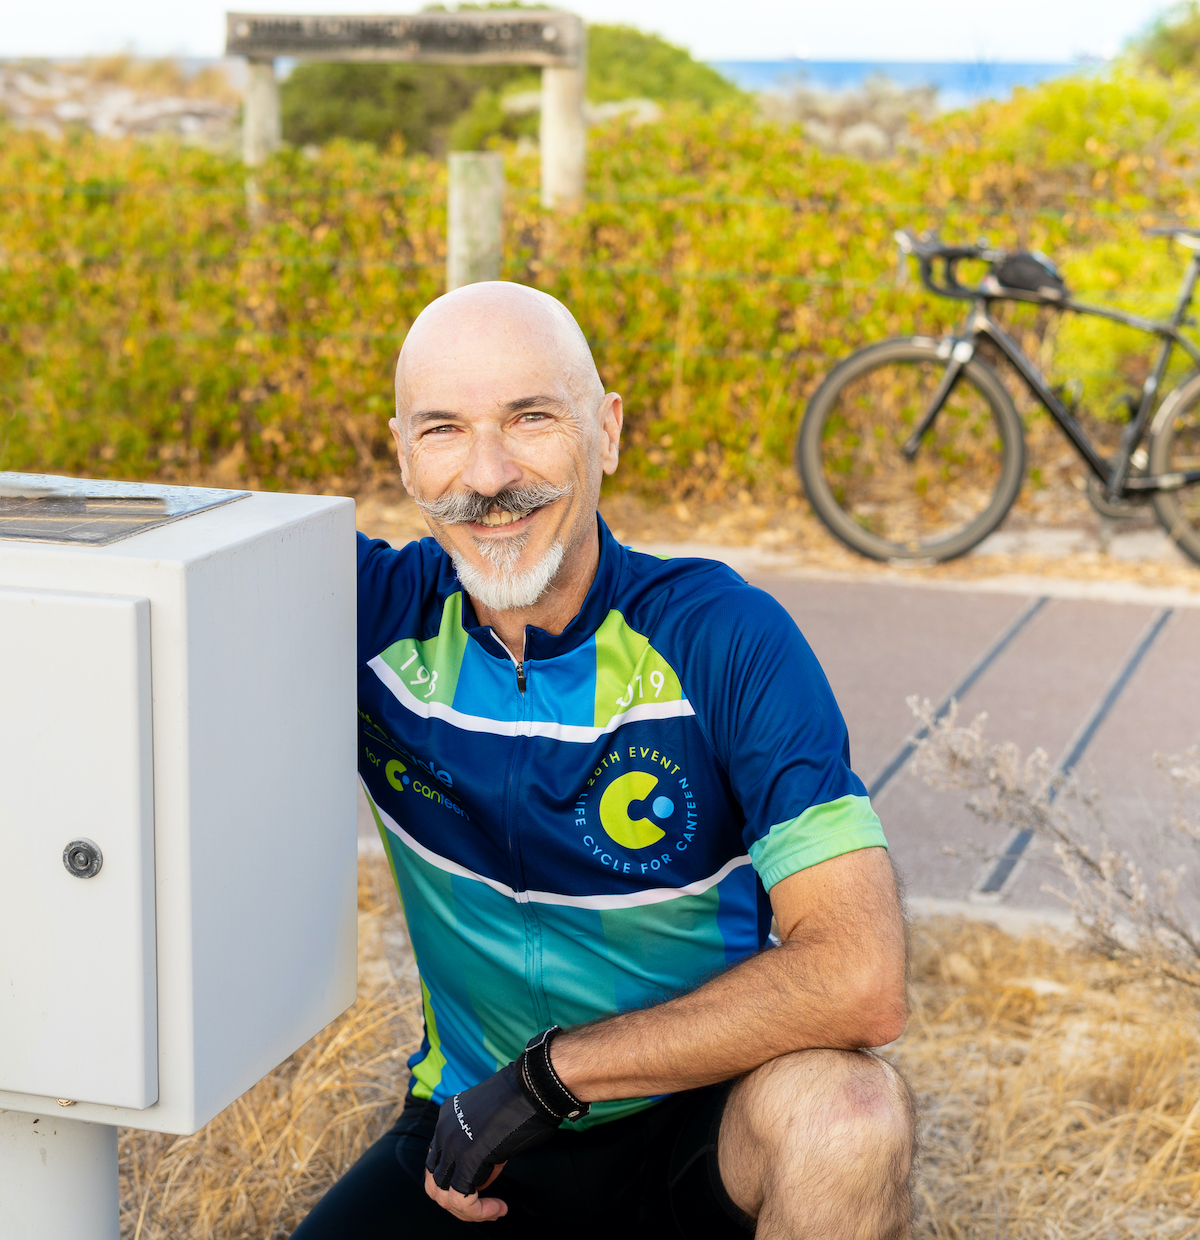 Maurice Berger, cycling enthusiast and traffic data expert at MetroCount